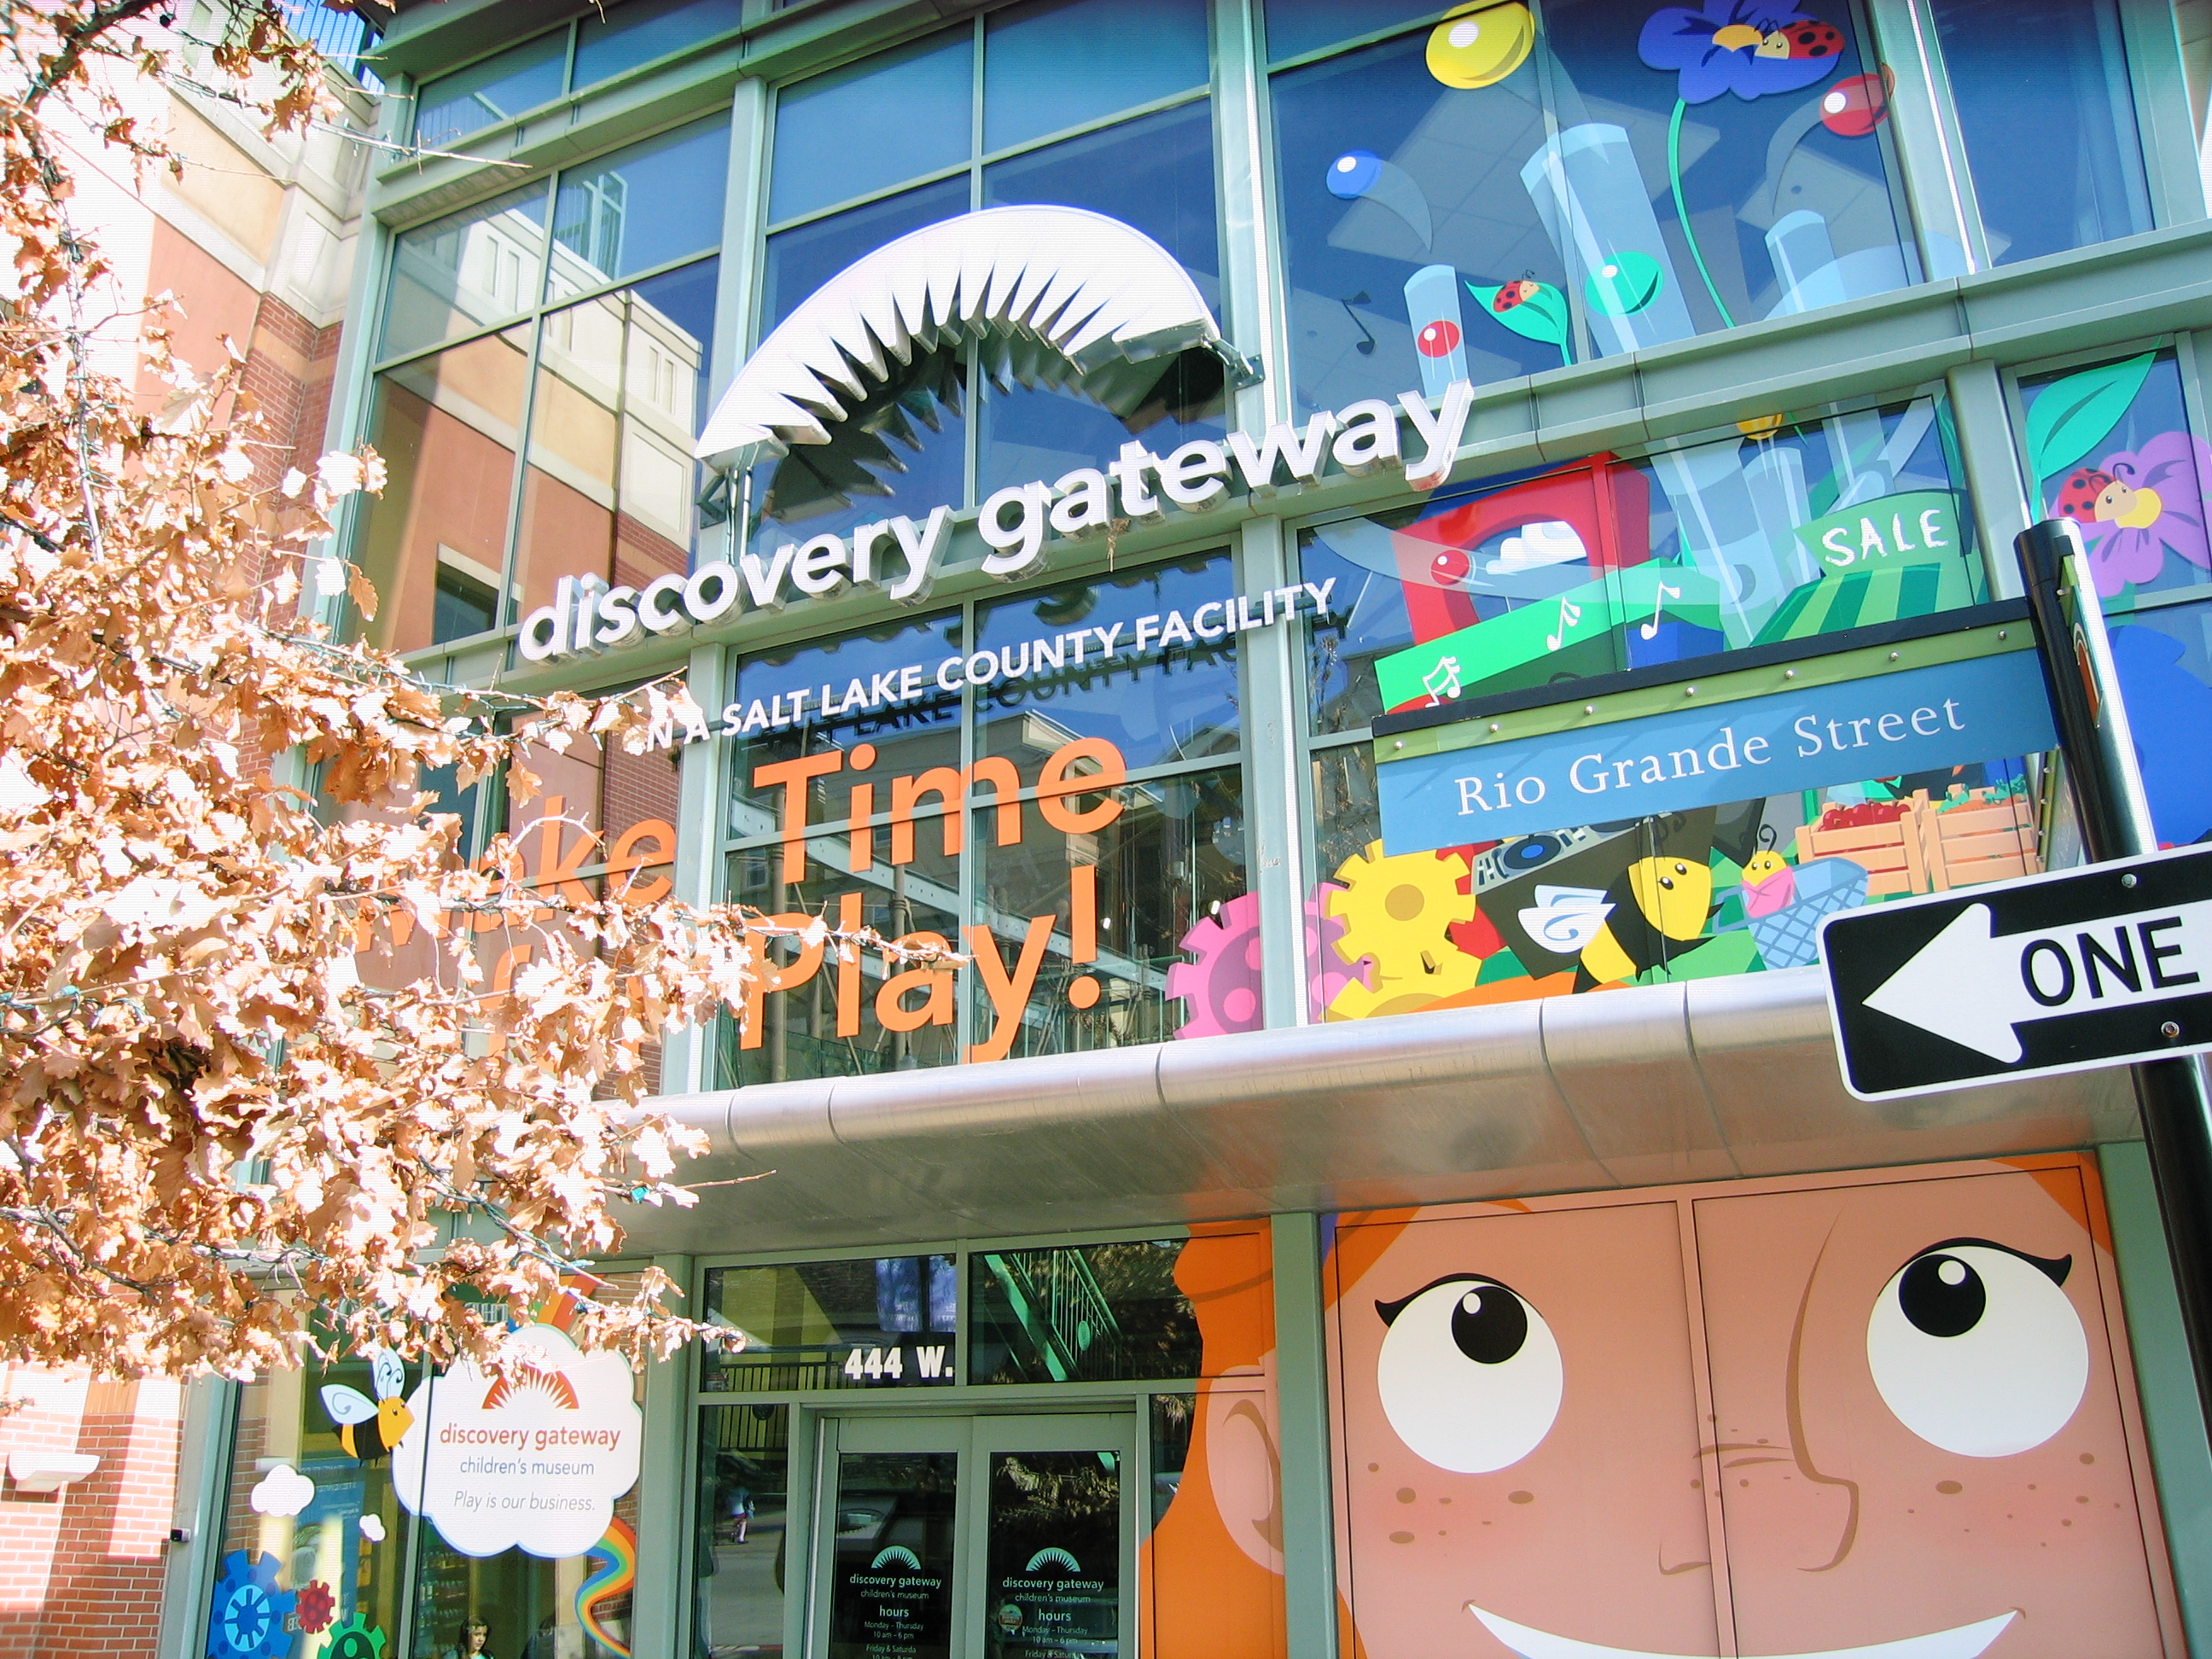 Discovery Gateway Evacuated As Crews Investigate Suspected Chemical